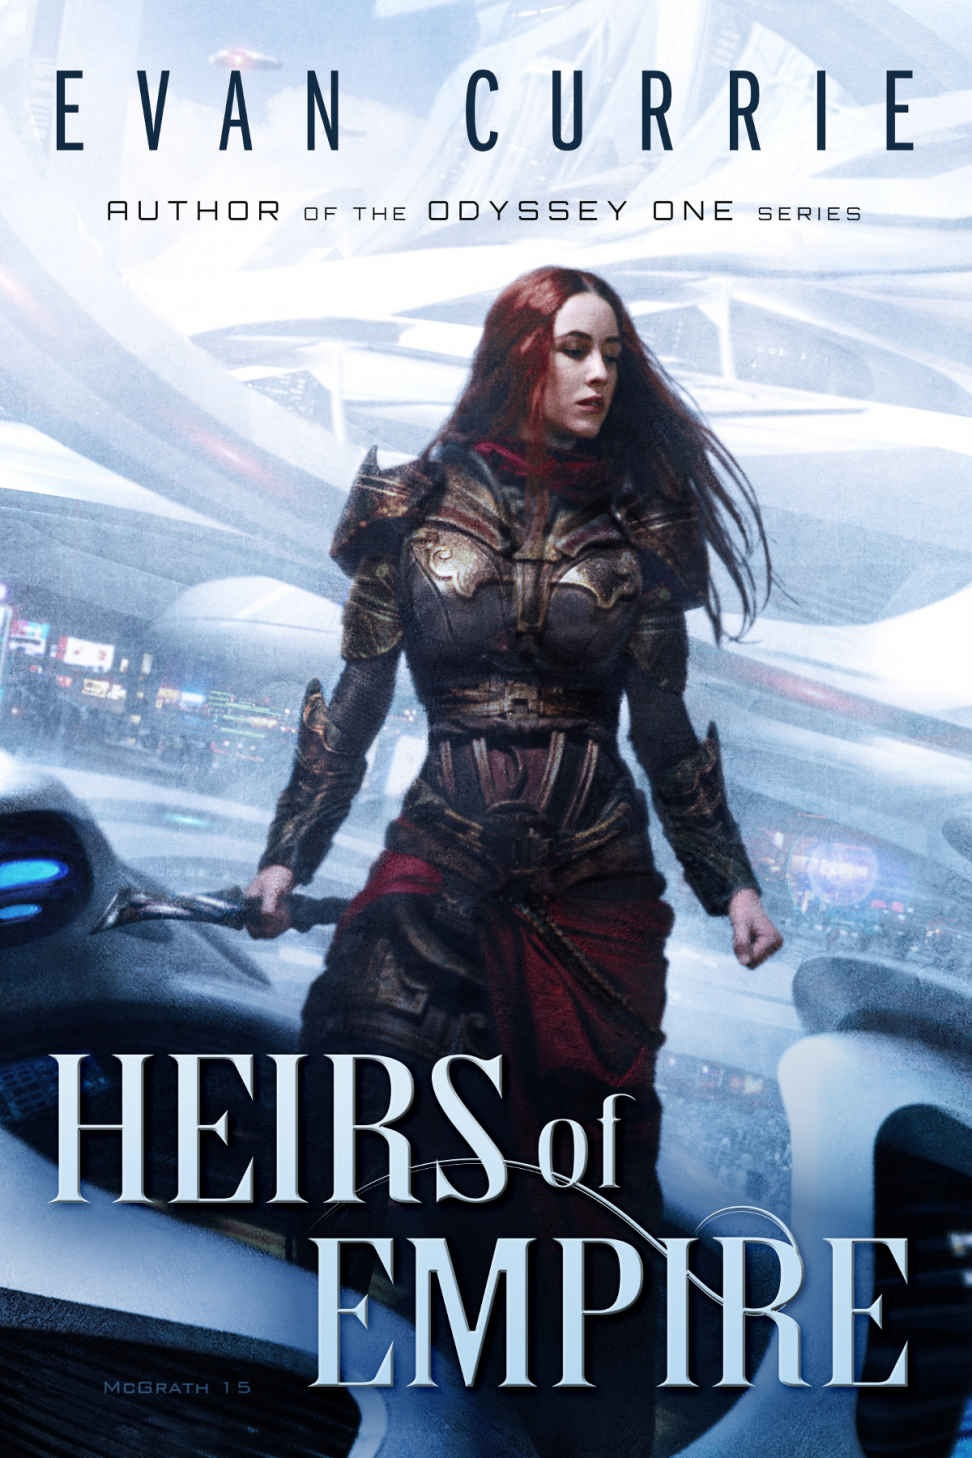 Heirs of the Empire – Very good action filled and somewhat different sci-fi story.